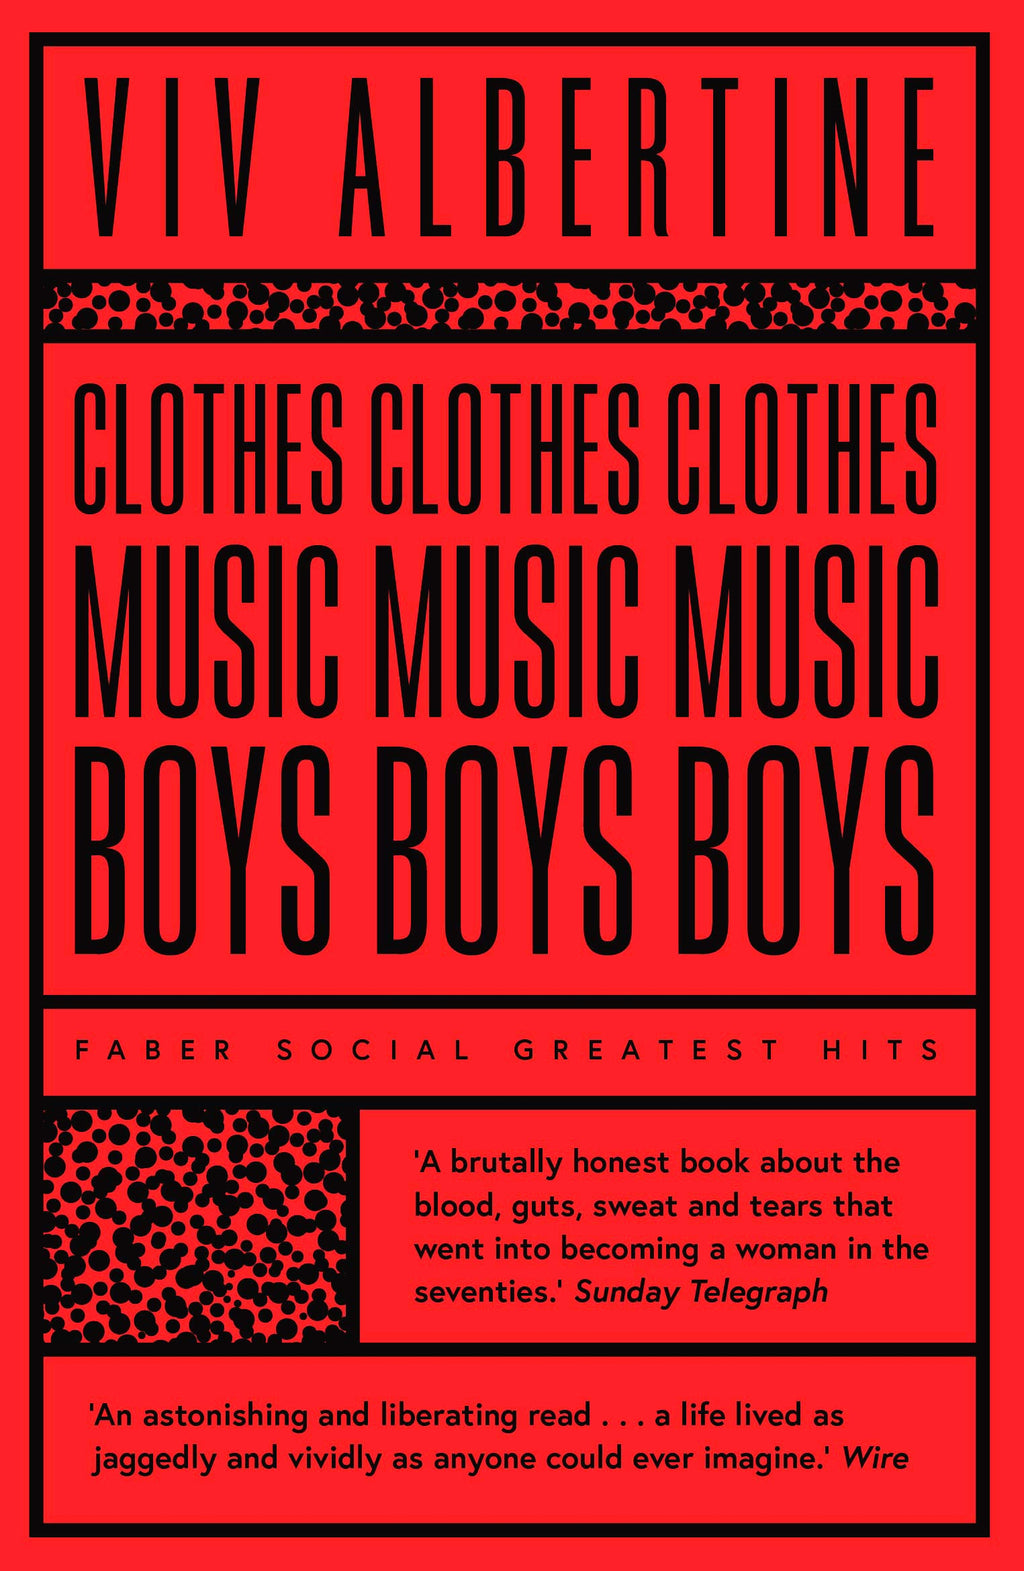 Viv Albertine - Clothes, Clothes, Clothes. Music, Music, Music. Boys, Boys, Boys [Faber Social Greatest Hits]